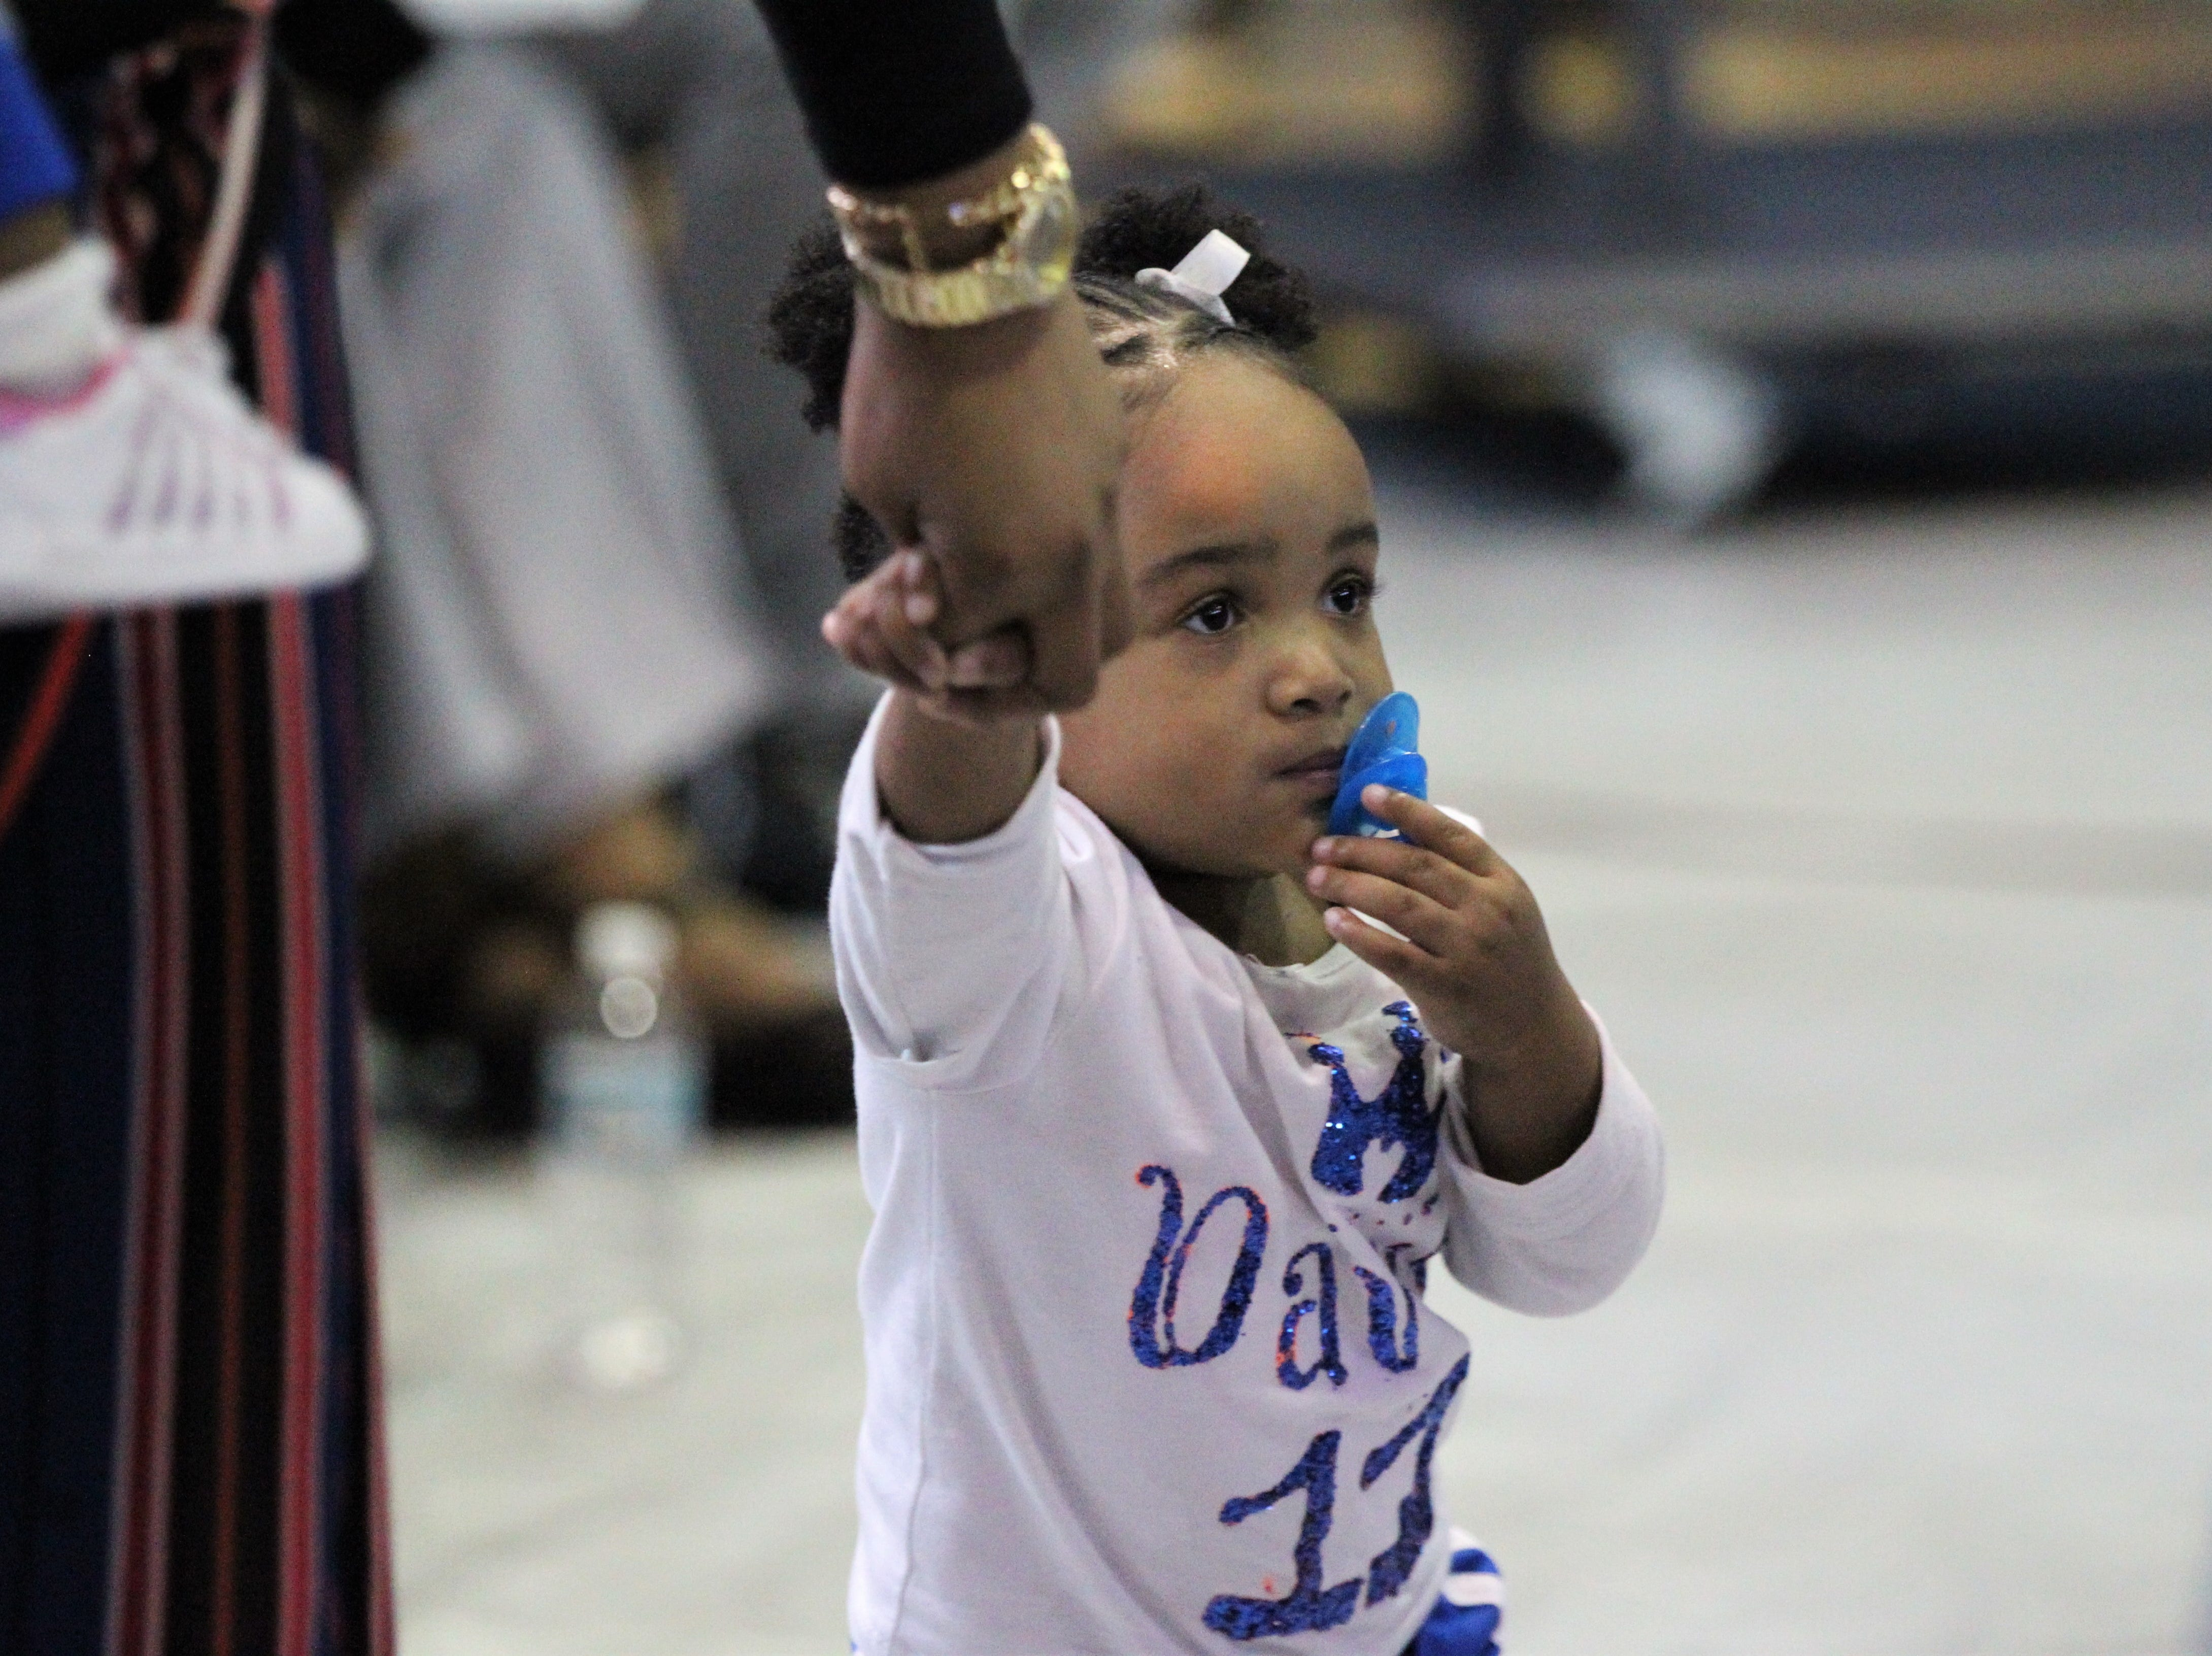 Jefferson County receiver Da'Shon Davis' nearly 2-year-old daughter De'ari during Jefferson County's signing day ceremony on Feb. 13, 2019. Davis signed with Tennessee State.